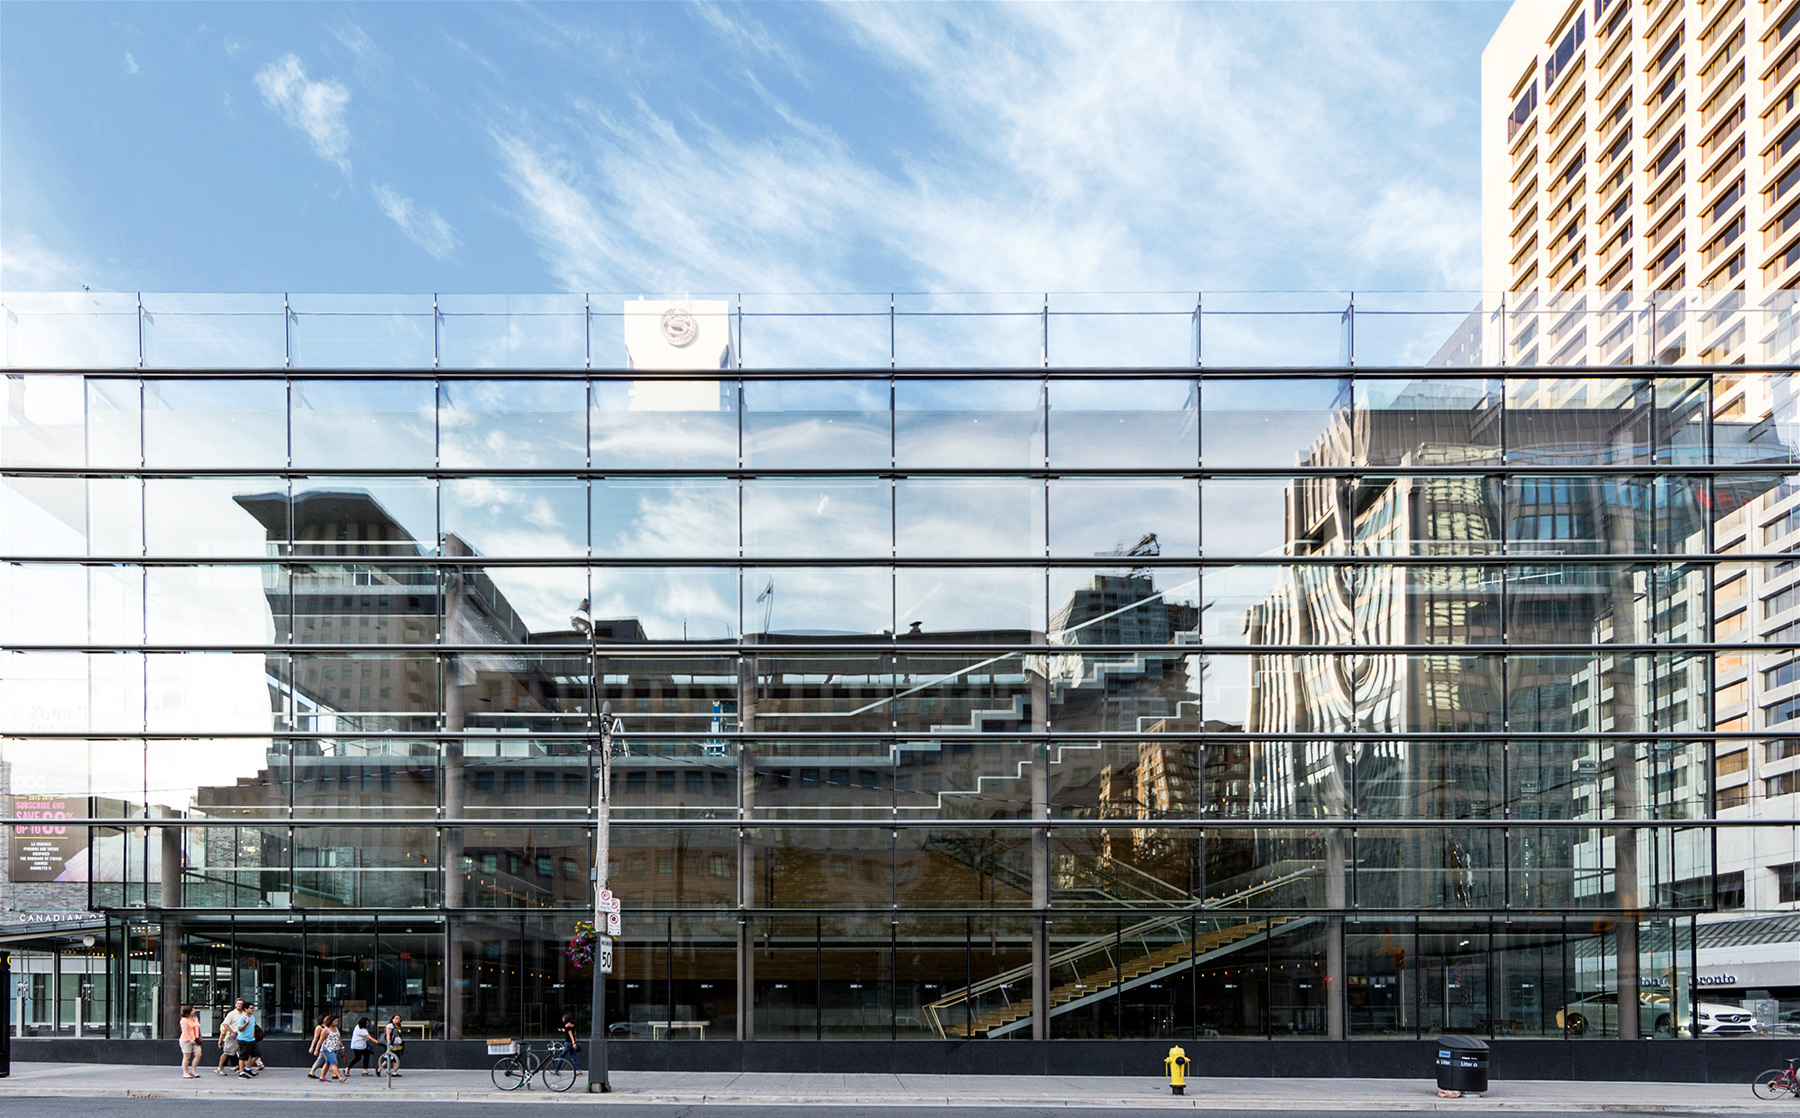 20150727. The transparent yet reflective glass curtain wall of t